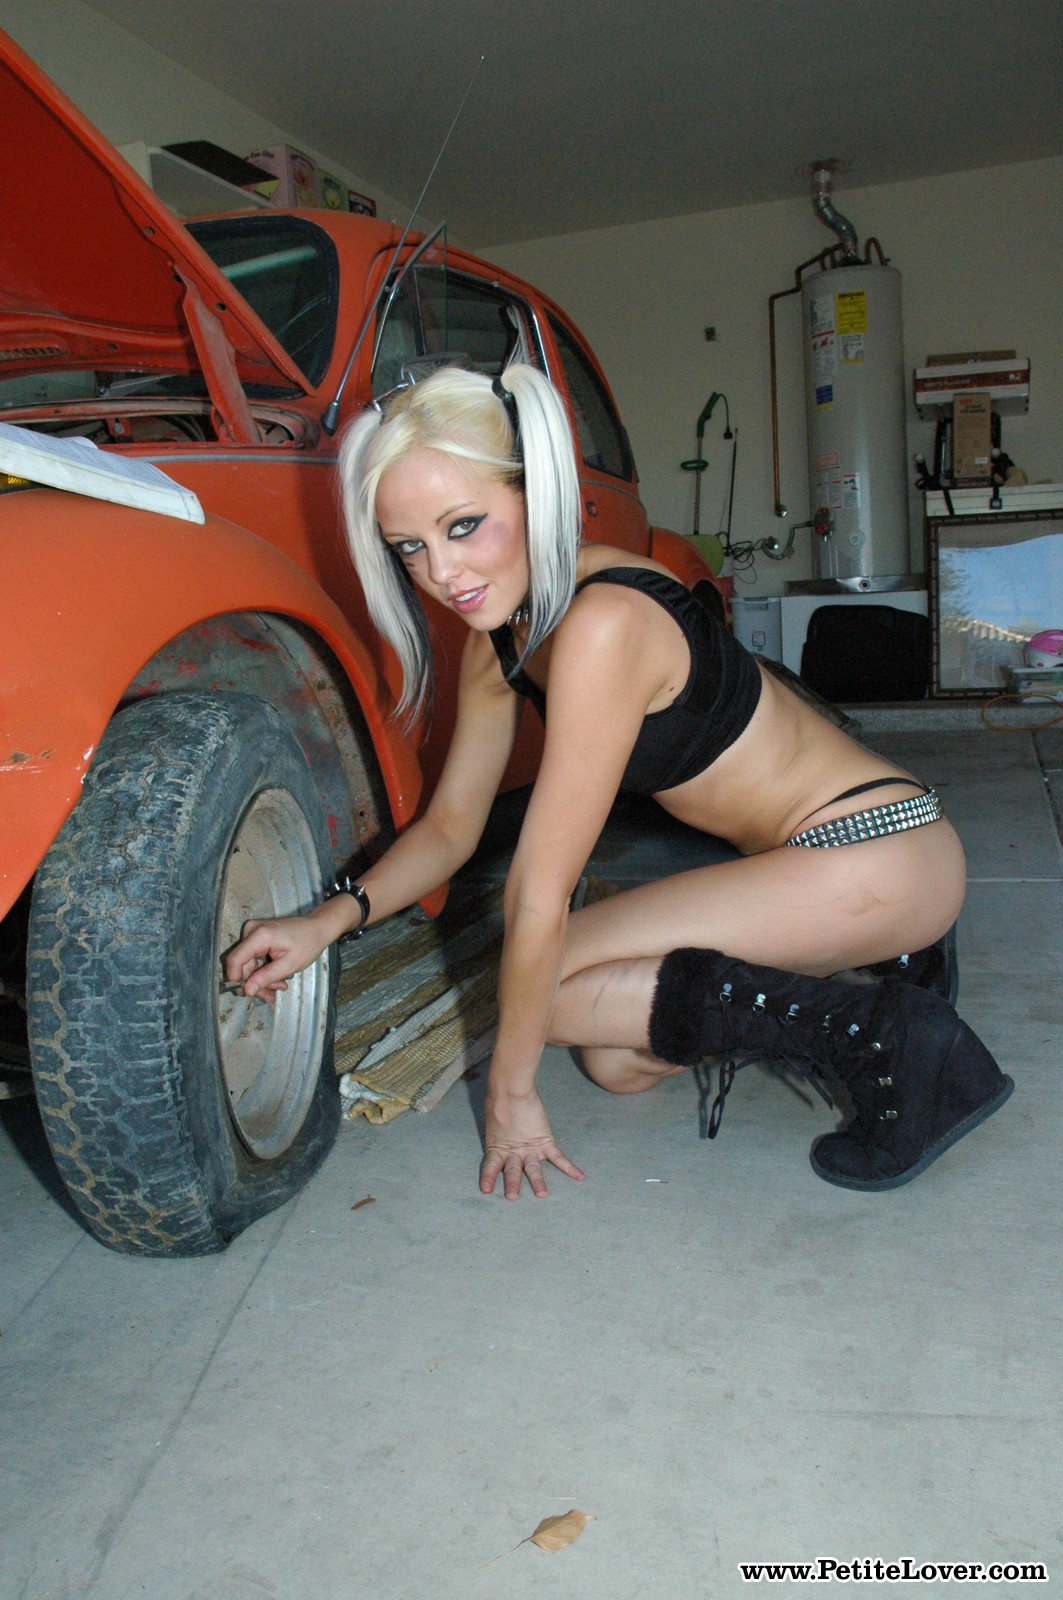 lindsay marie   sexy petite blonde gets dirty working on a car